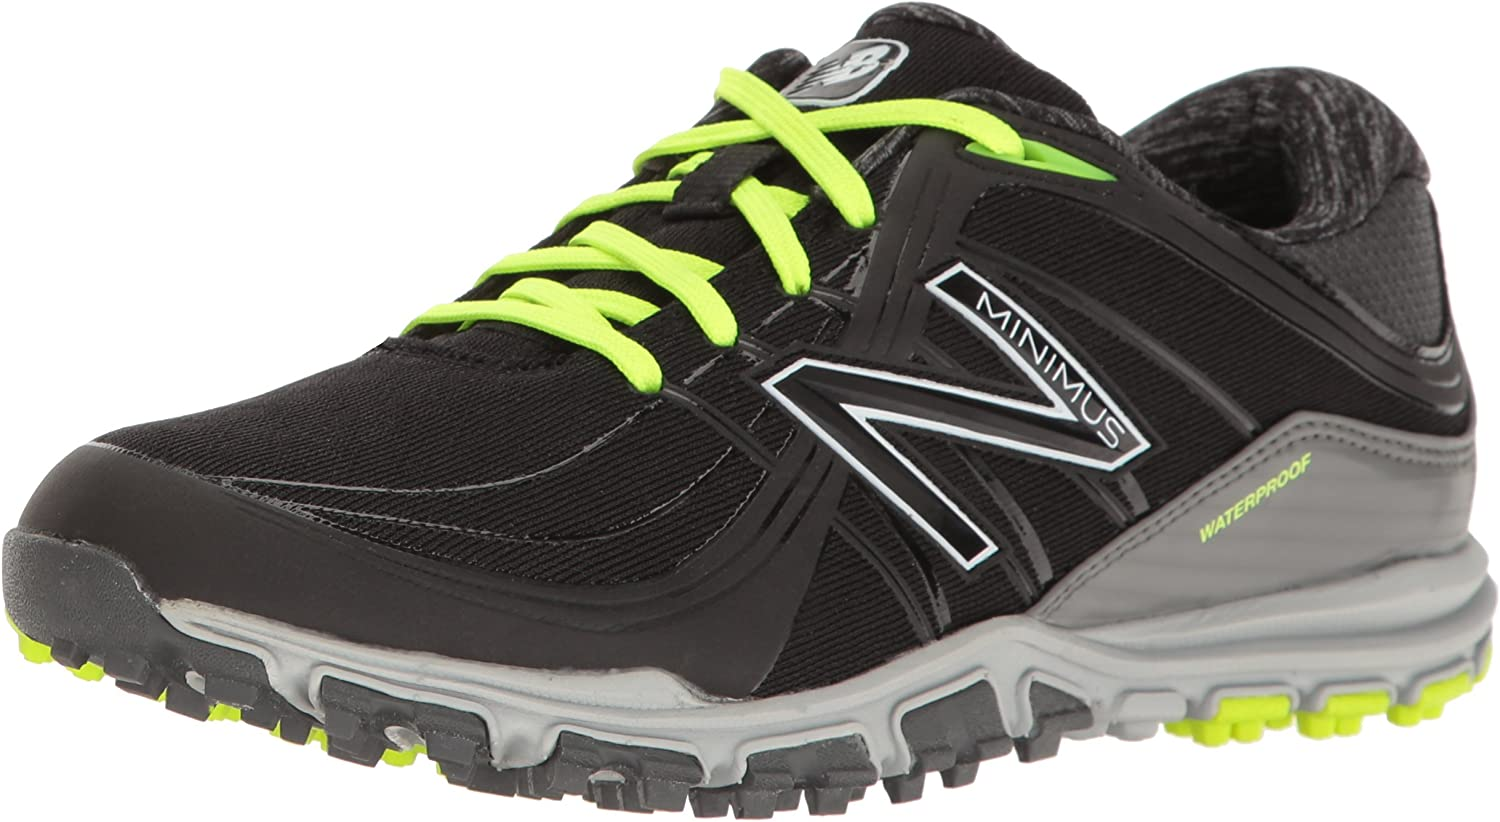 New Balance Women s NBGW1005 Golf Shoe